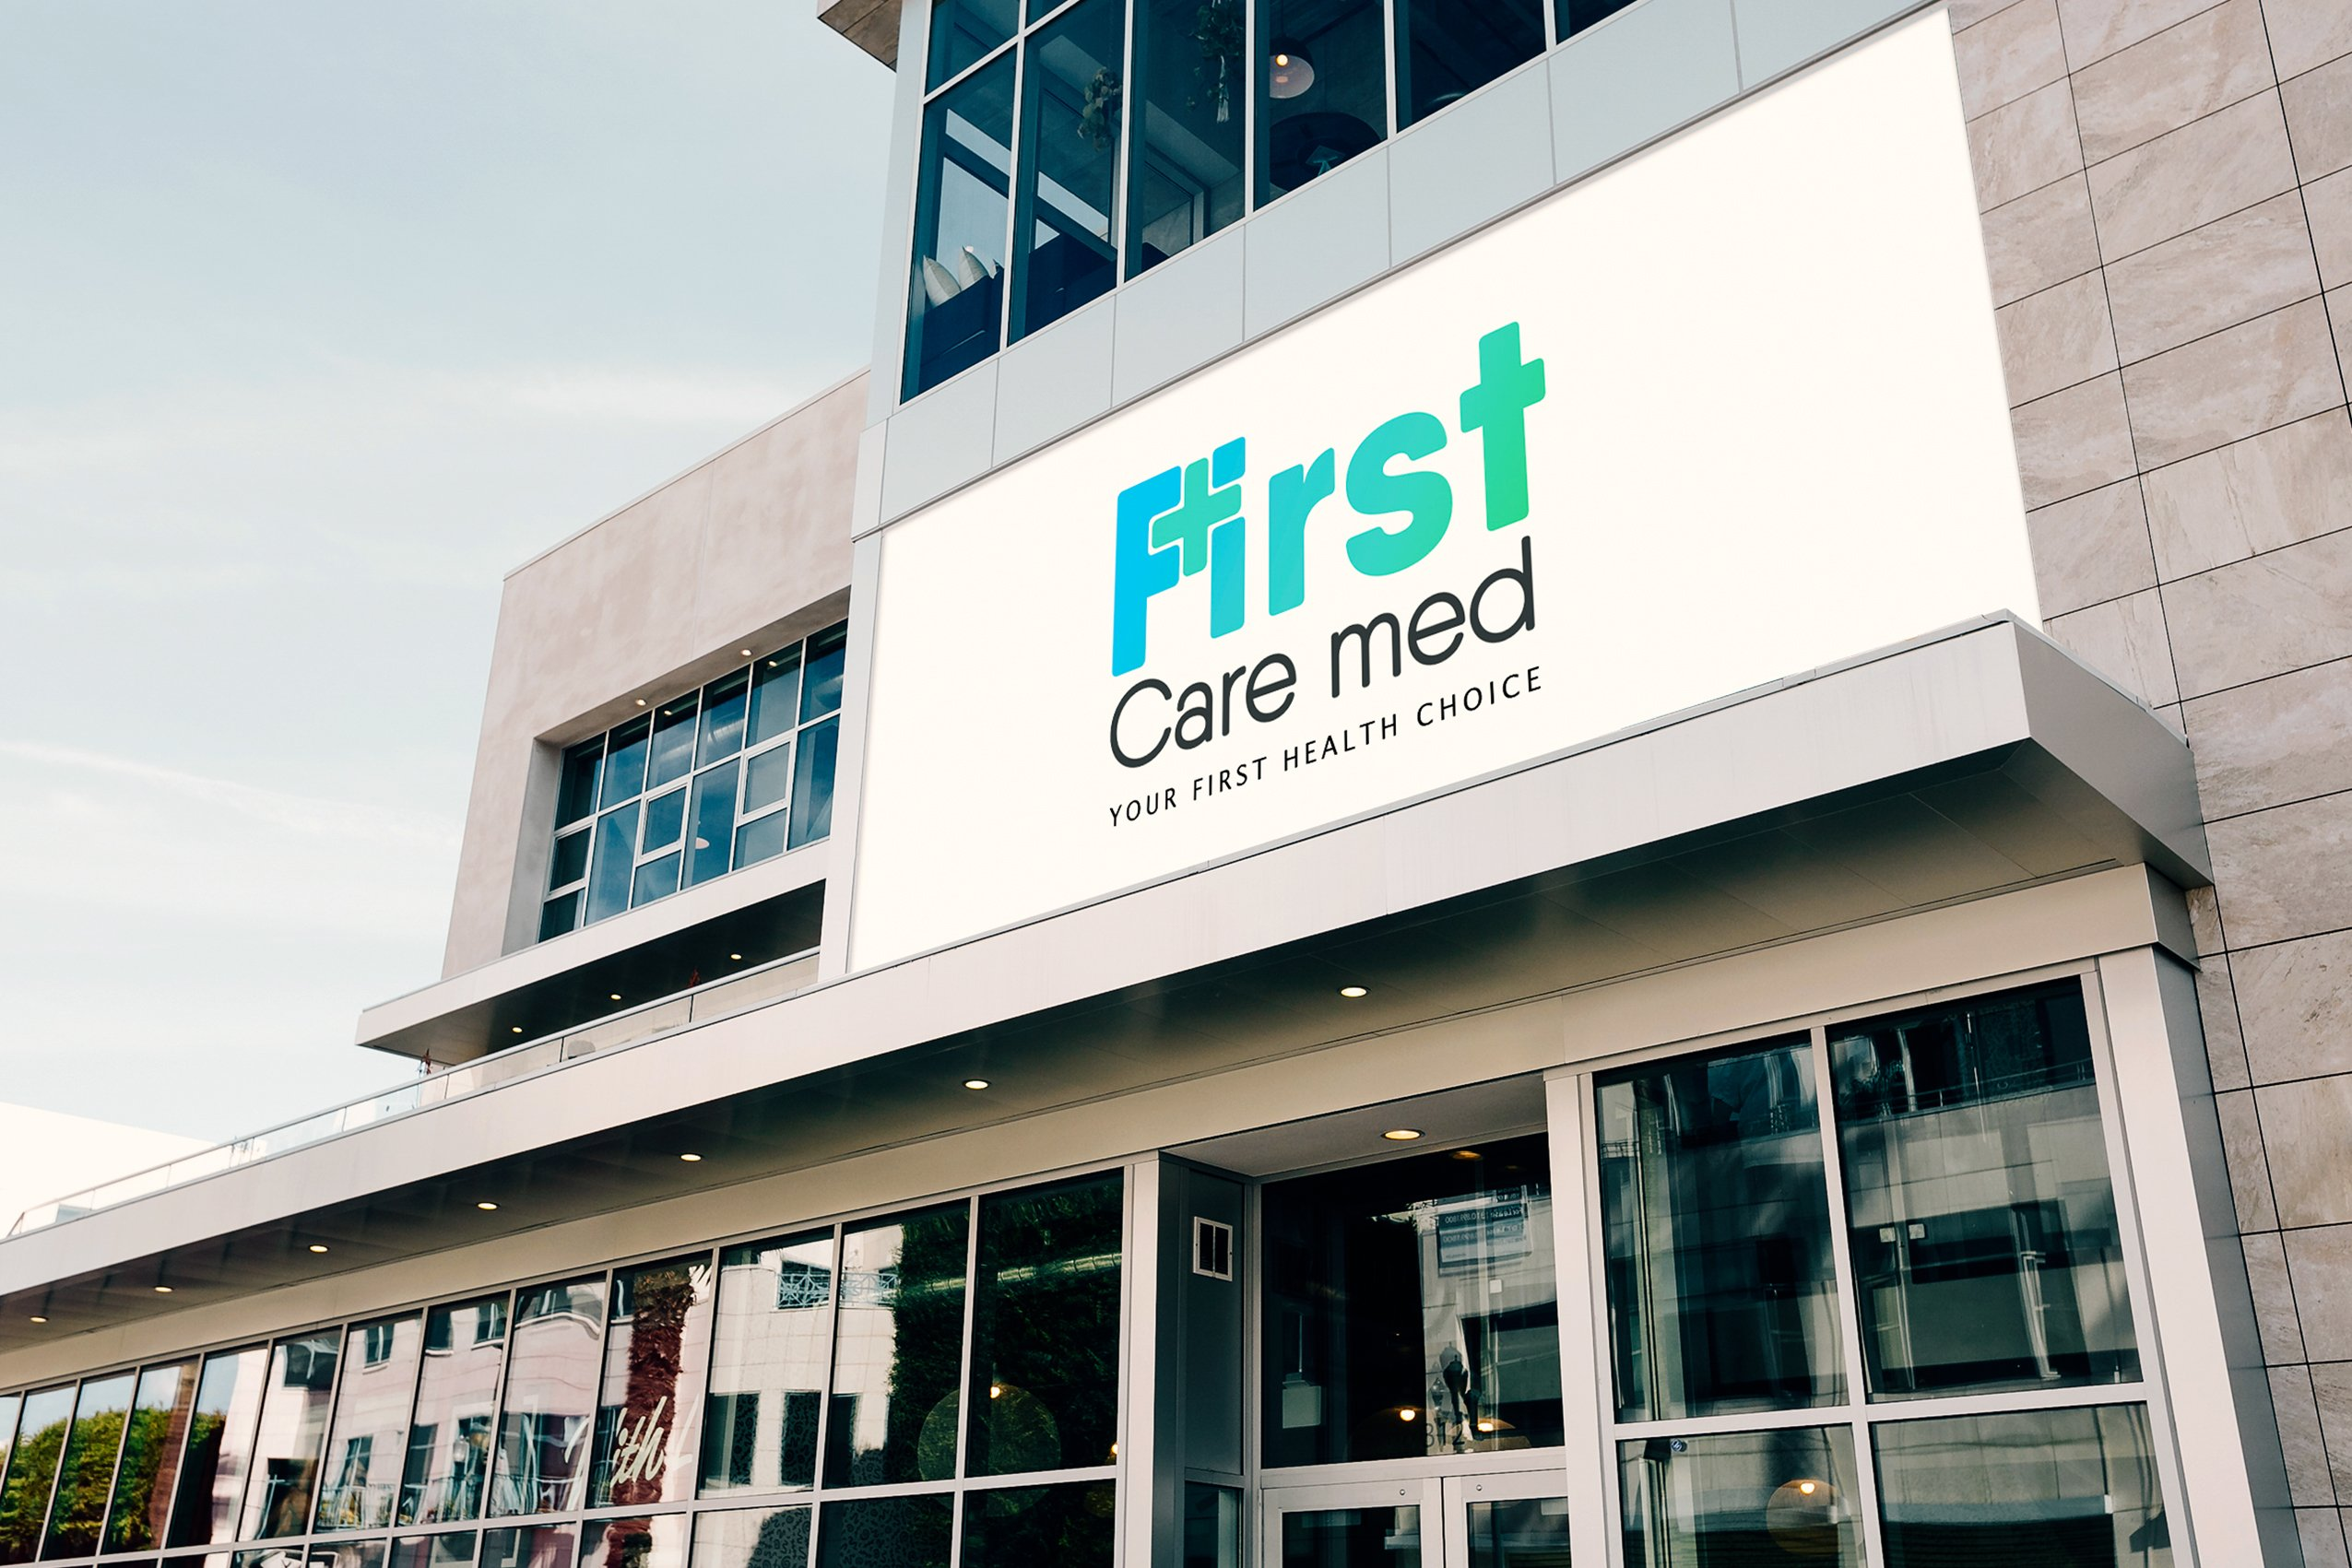 first care -900 x600 - 3